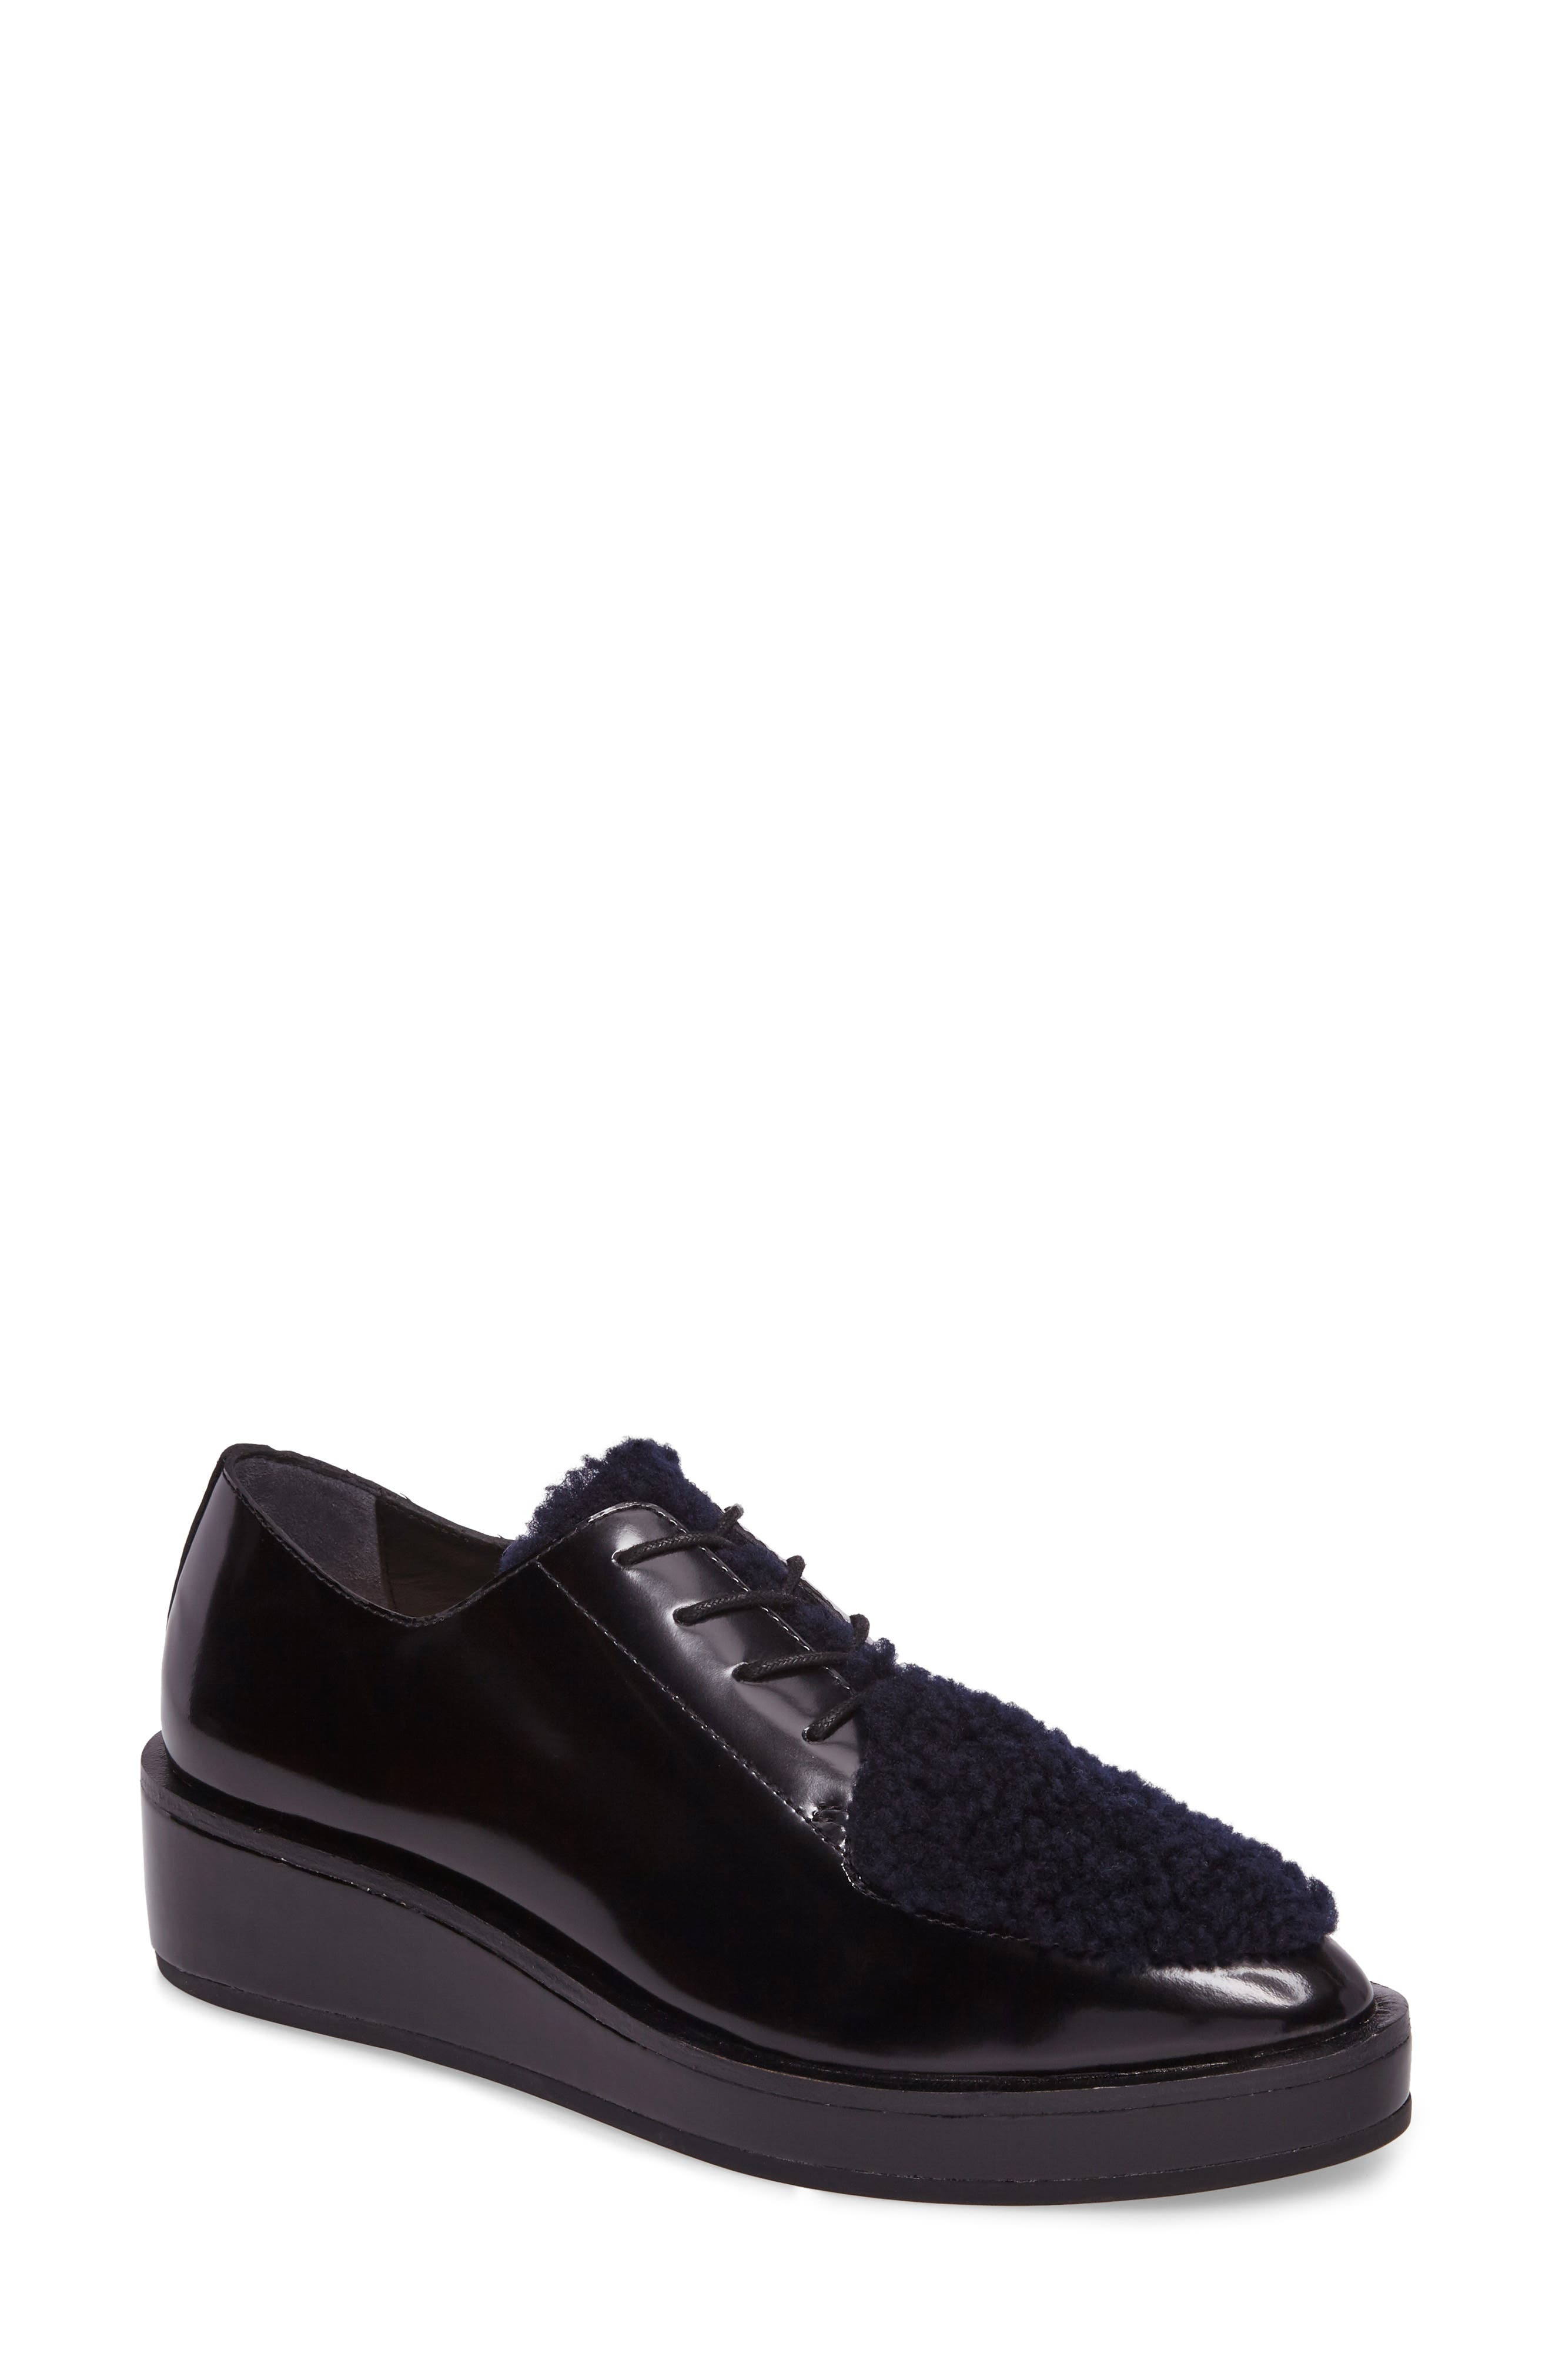 Loeffler Randall Frances Genuine Shearling Oxford (Women)